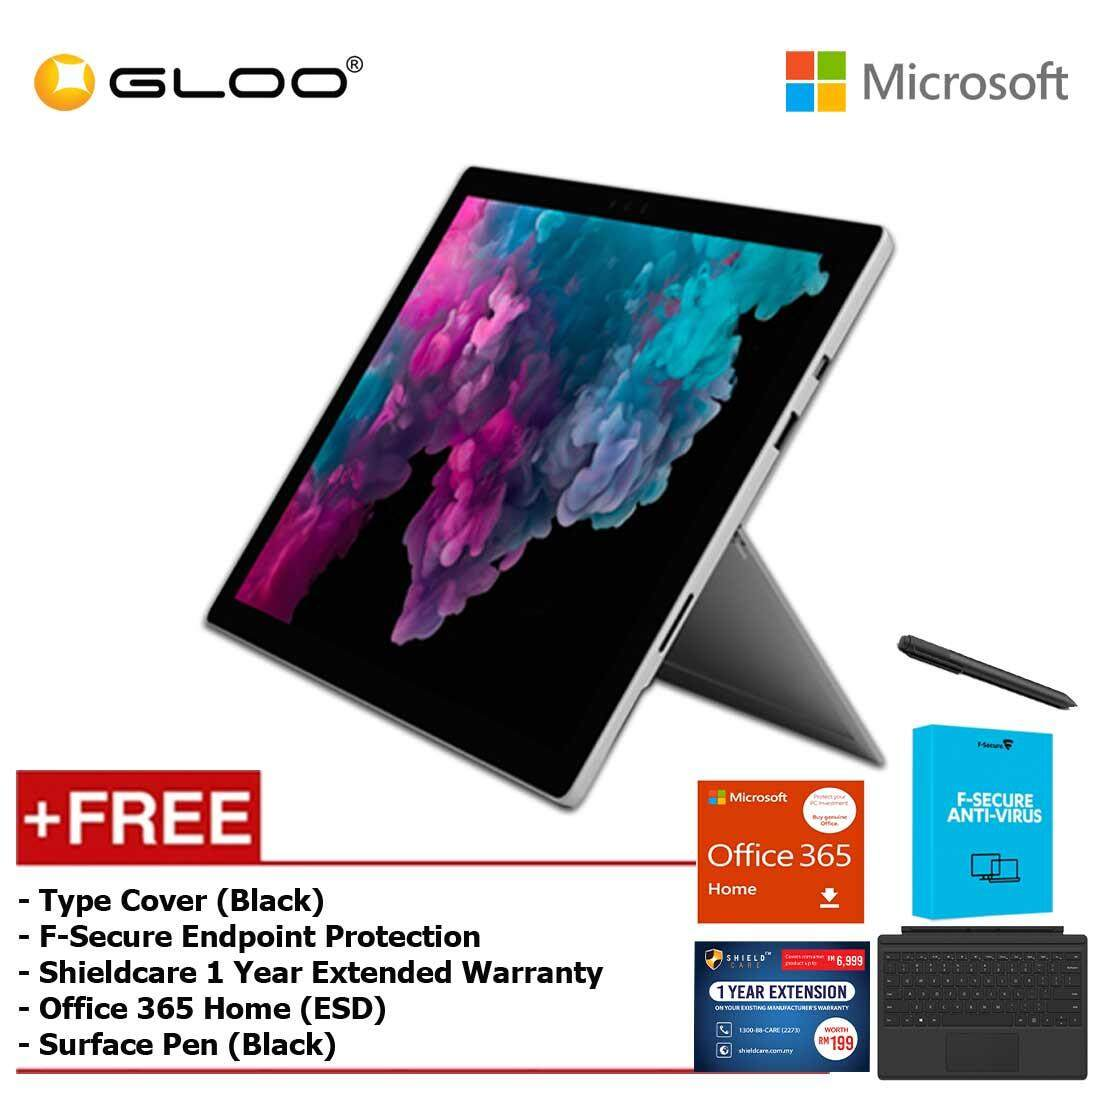 Microsoft Surface Pro 6 Core i5/8GB RAM - 256GB + Type Cover Black + Office 365 Home + Pen Black + Fsecure + Shieldcare 1 Year Extended Warranty Malaysia